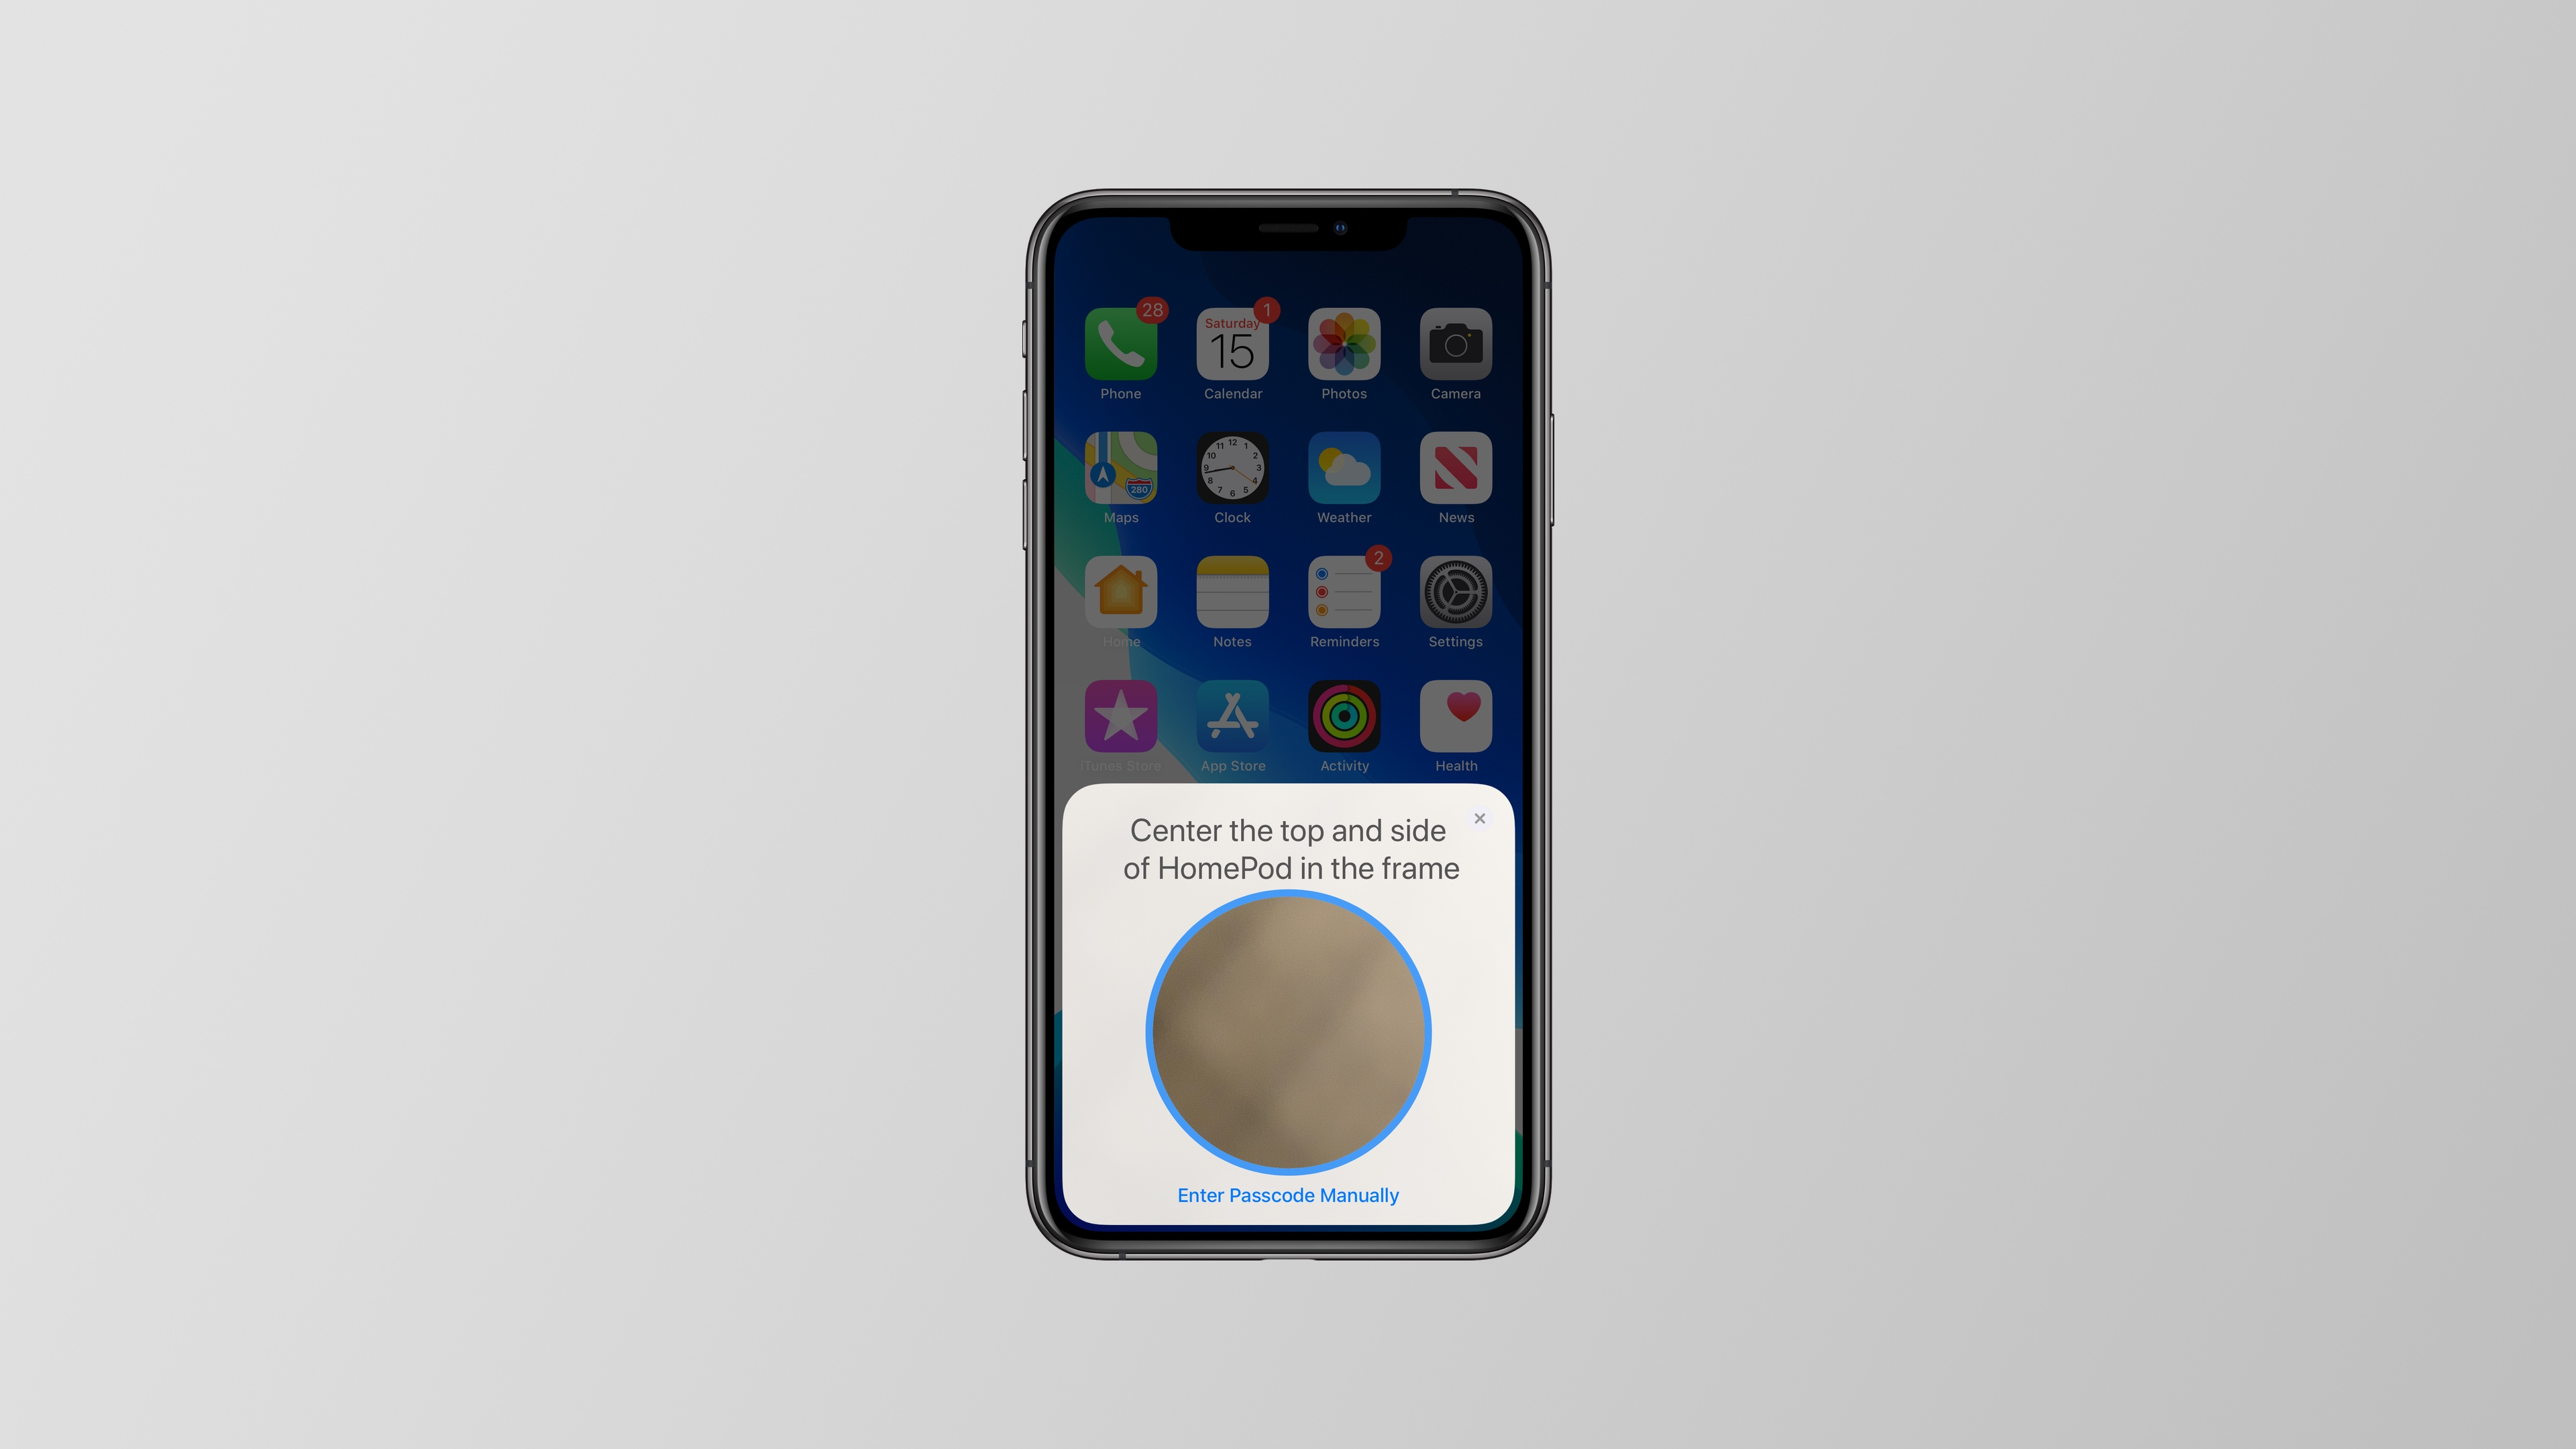 iOS 13 includes an updated HomePod setup process - 9to5Mac